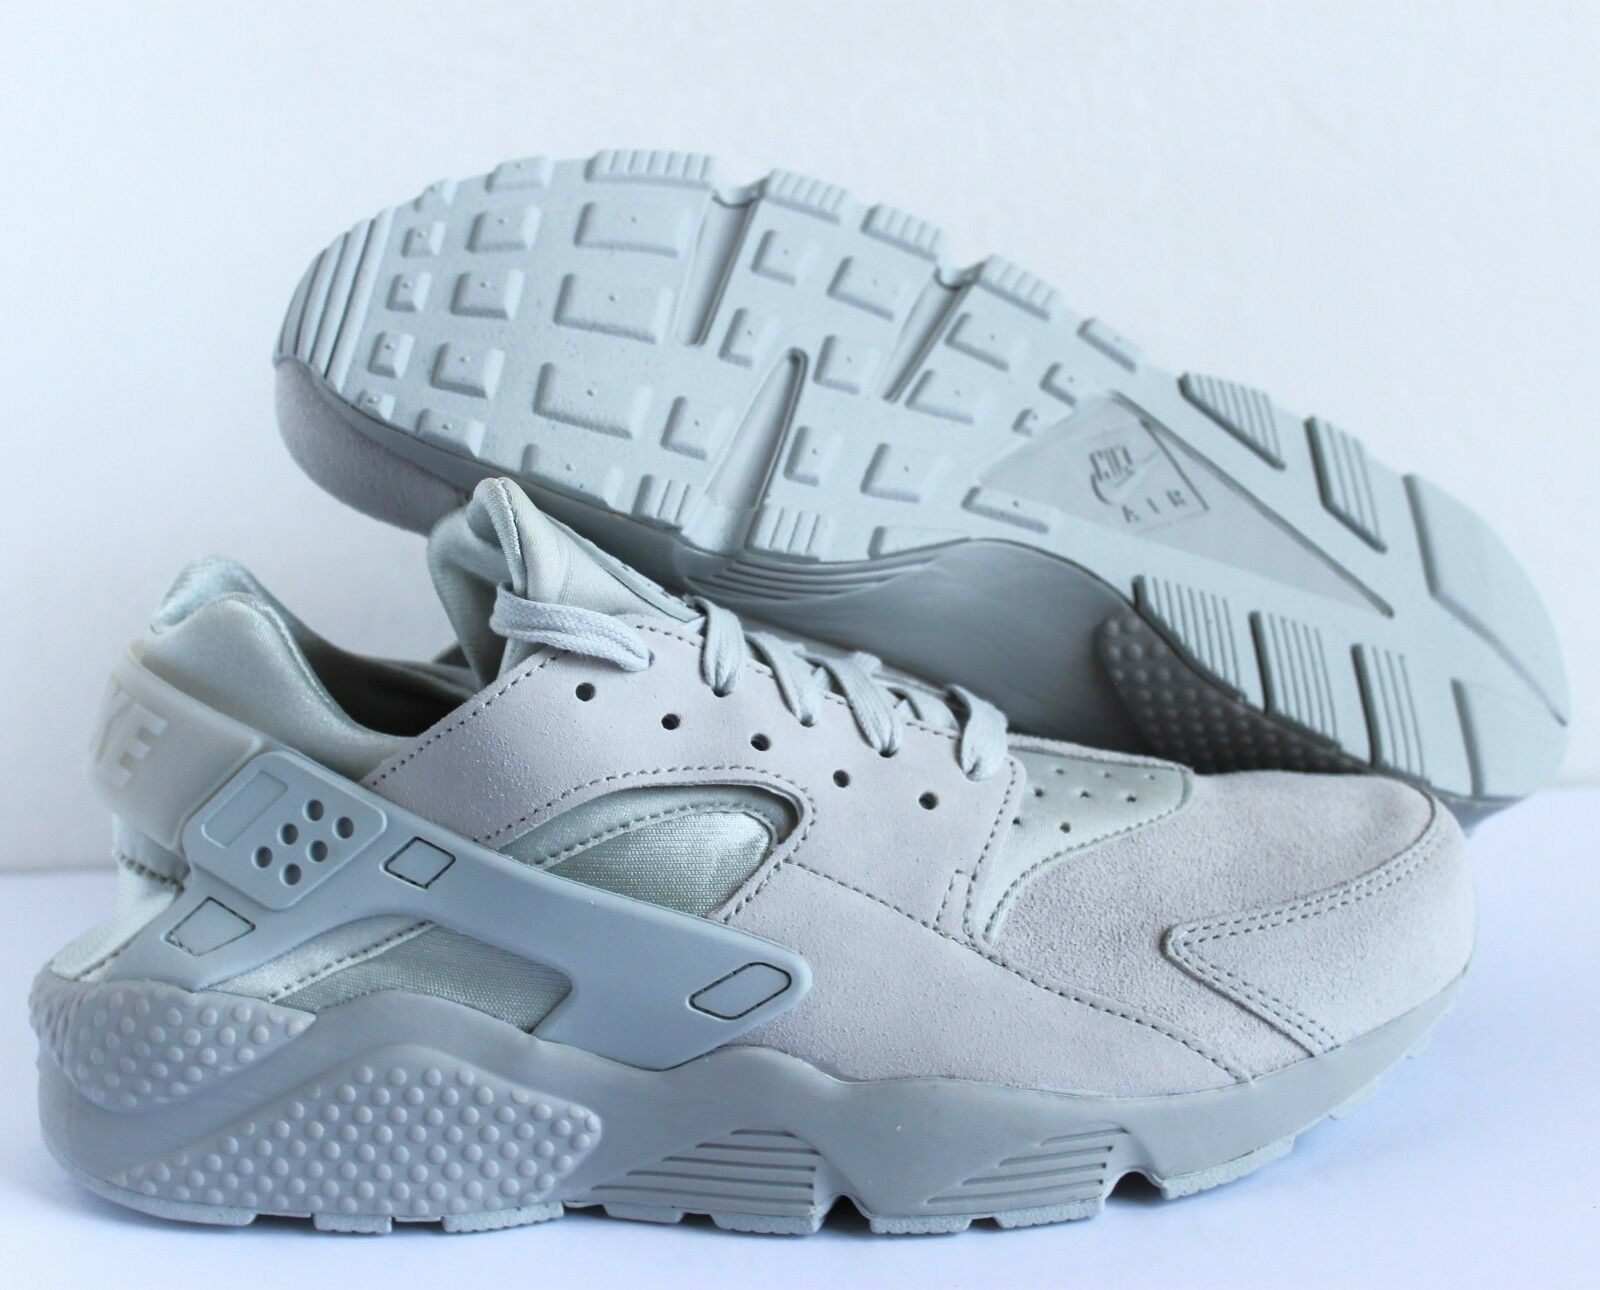 NIKE AIR HUARACHE RUN PRM PREMIUM NEUTRAL GREY SZ SZ SZ 10 [704830-005] 2a80e3